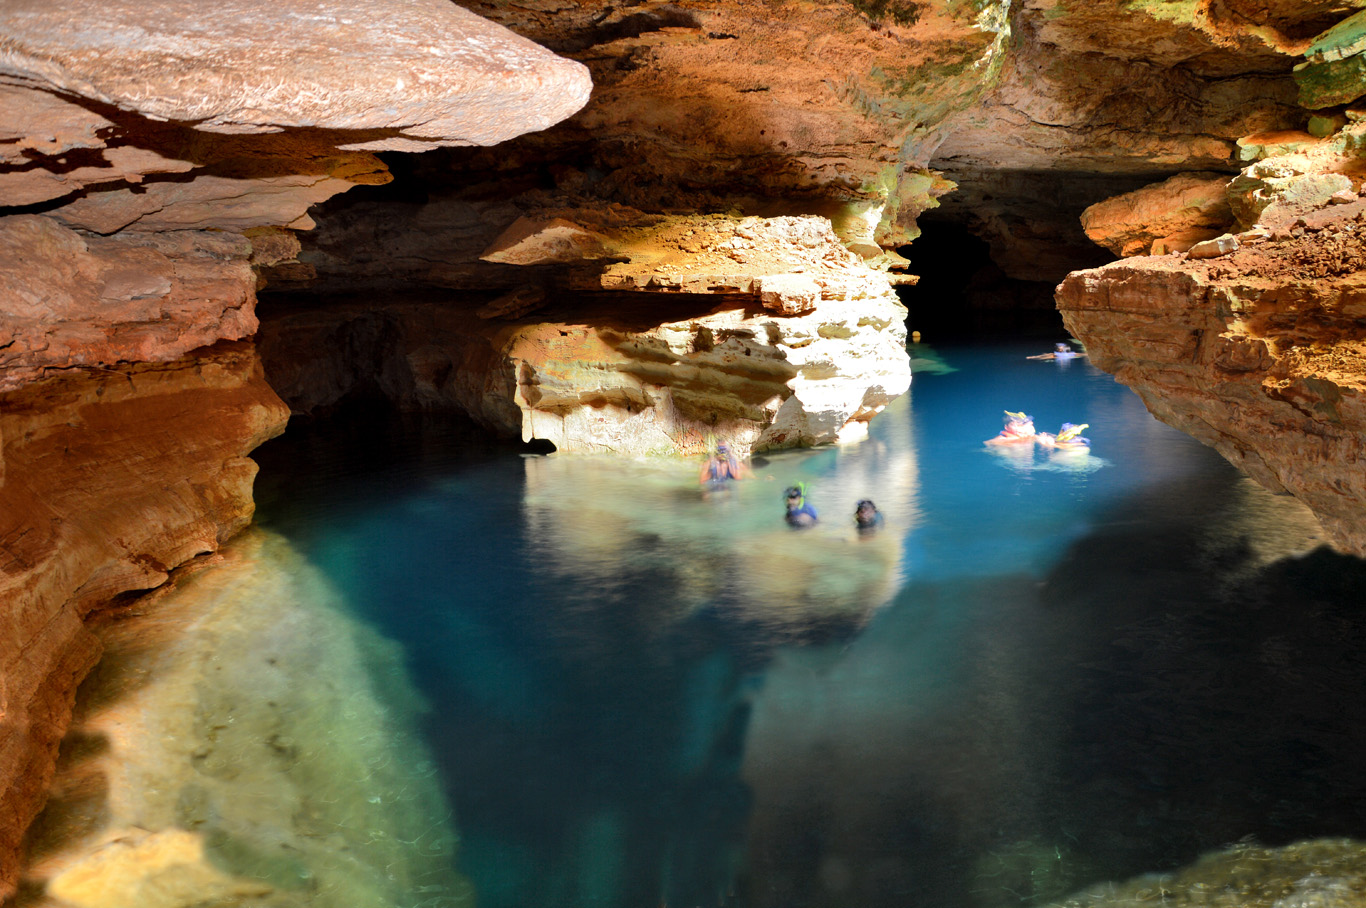 Swimming in the Blue Pool Cave